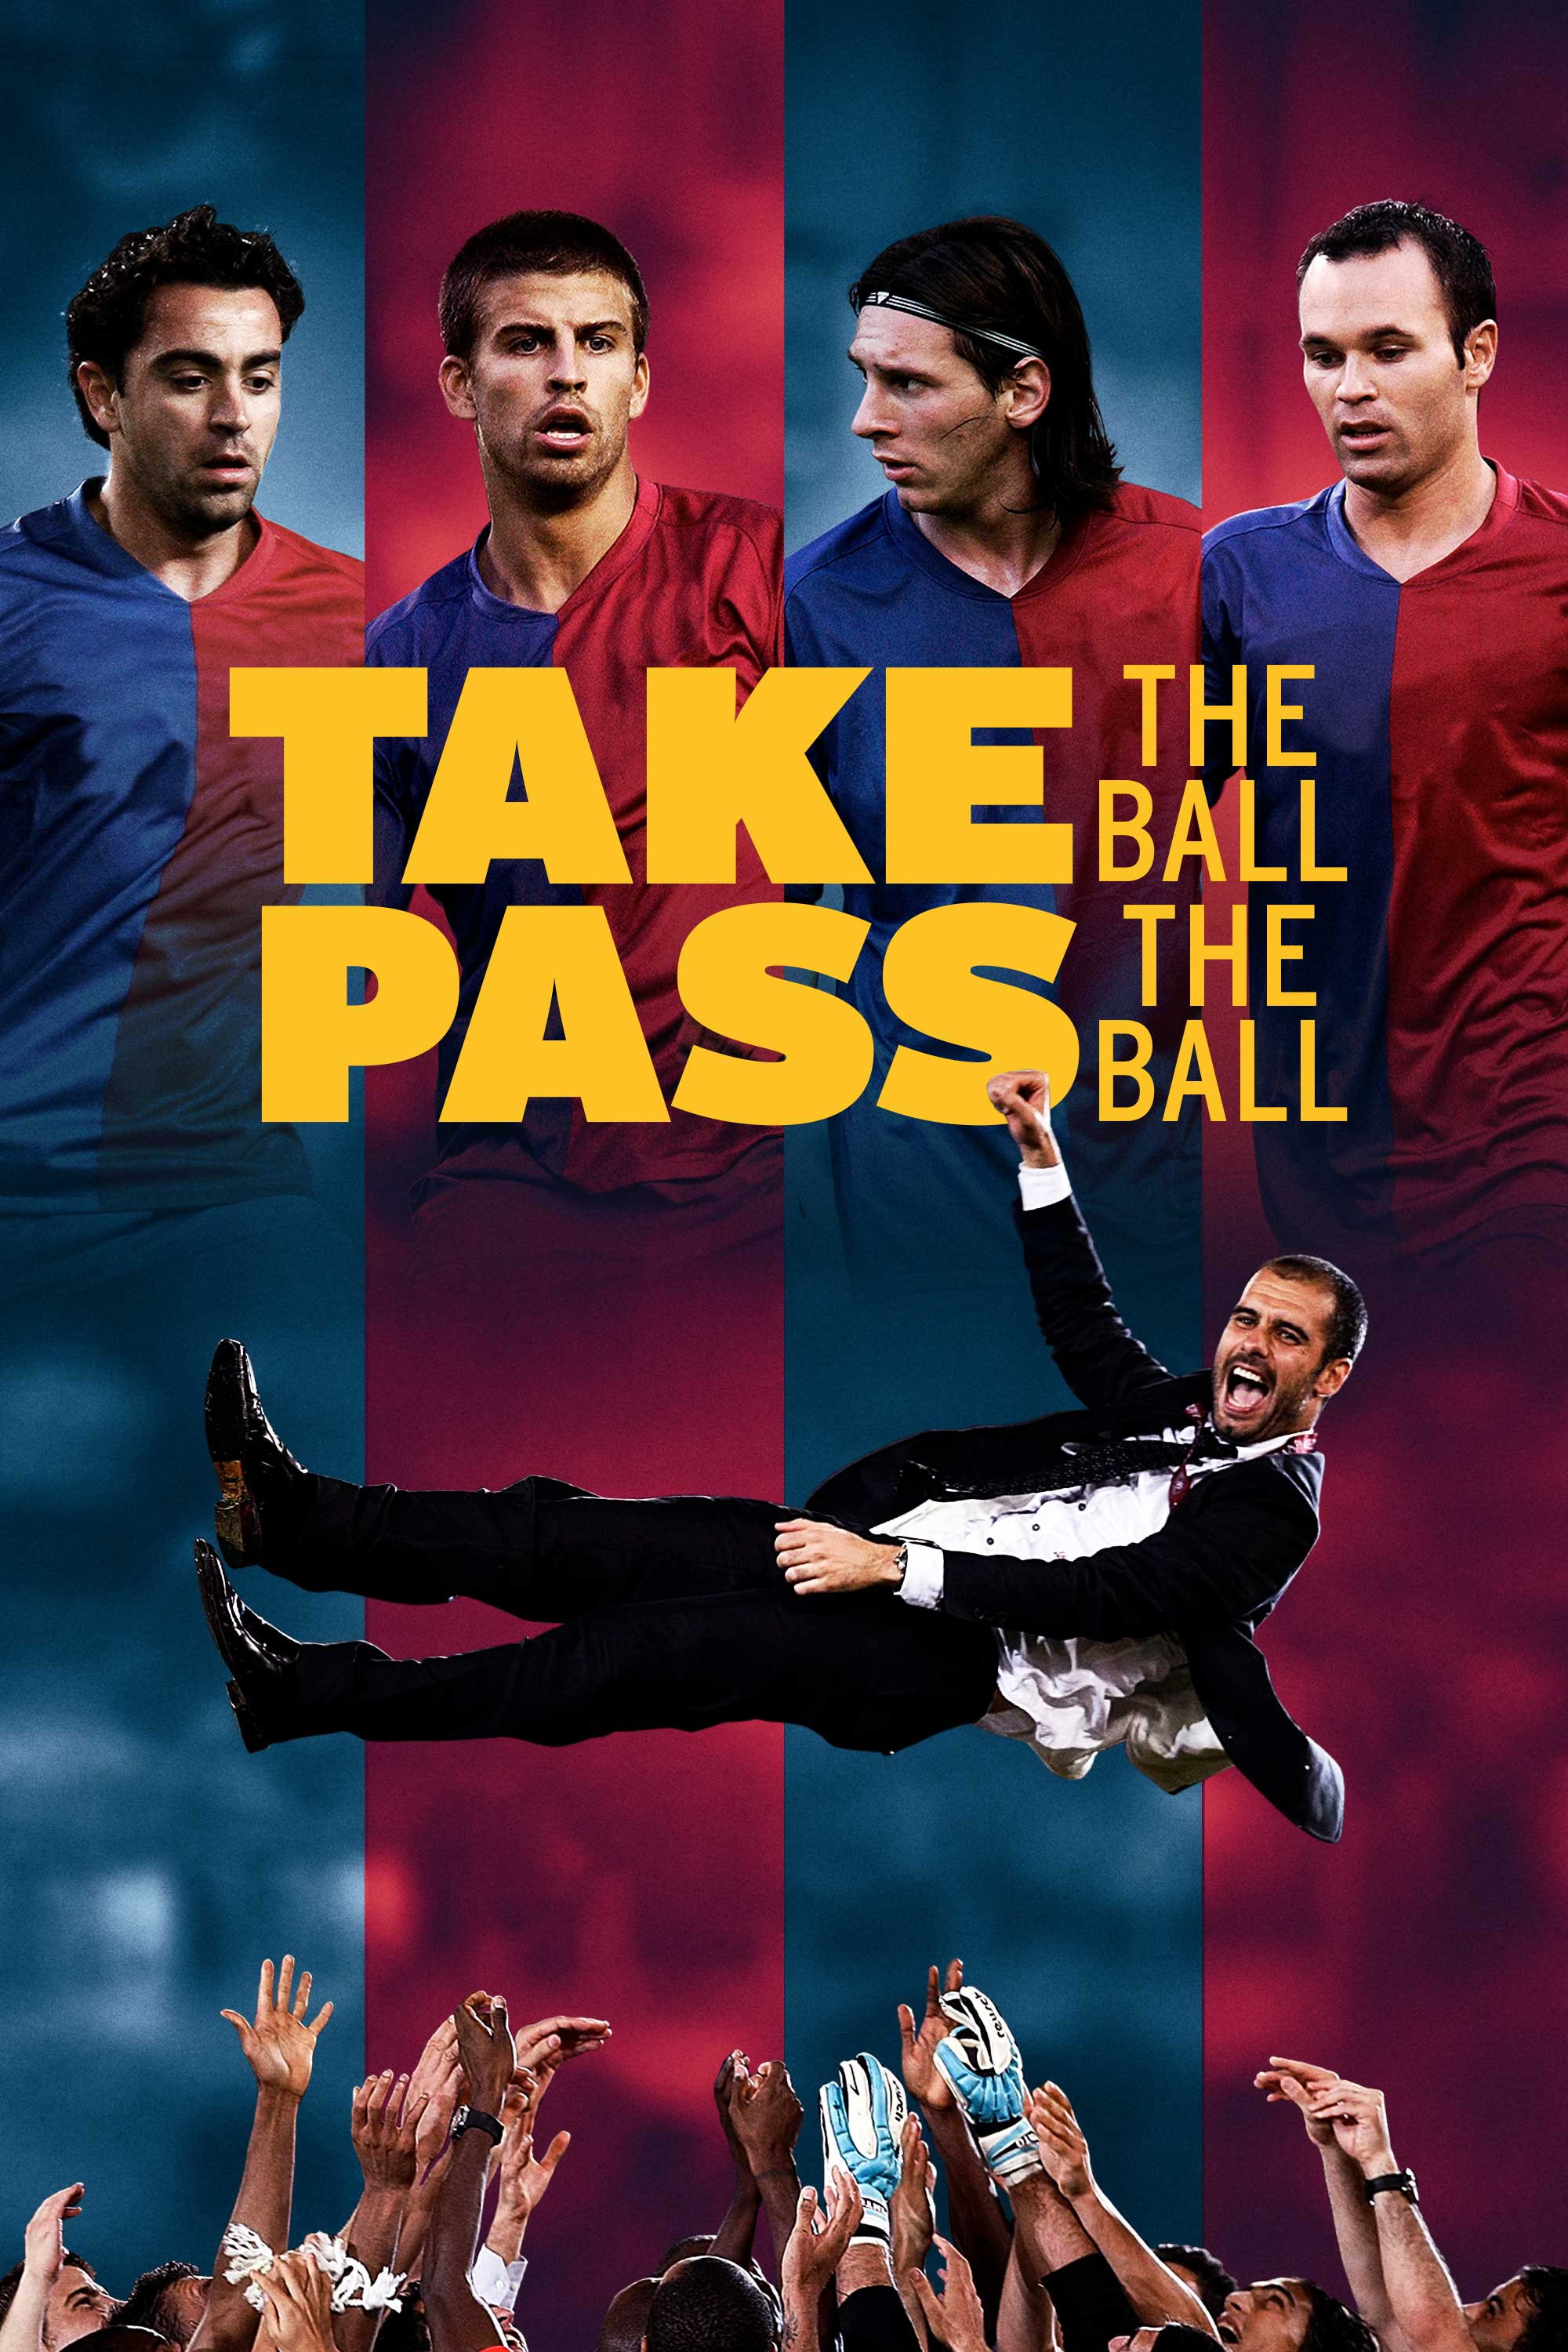 Take The Ball Pass The Ball 2018 Documentary 720p BluRay 900MB With Bangla Subtitle